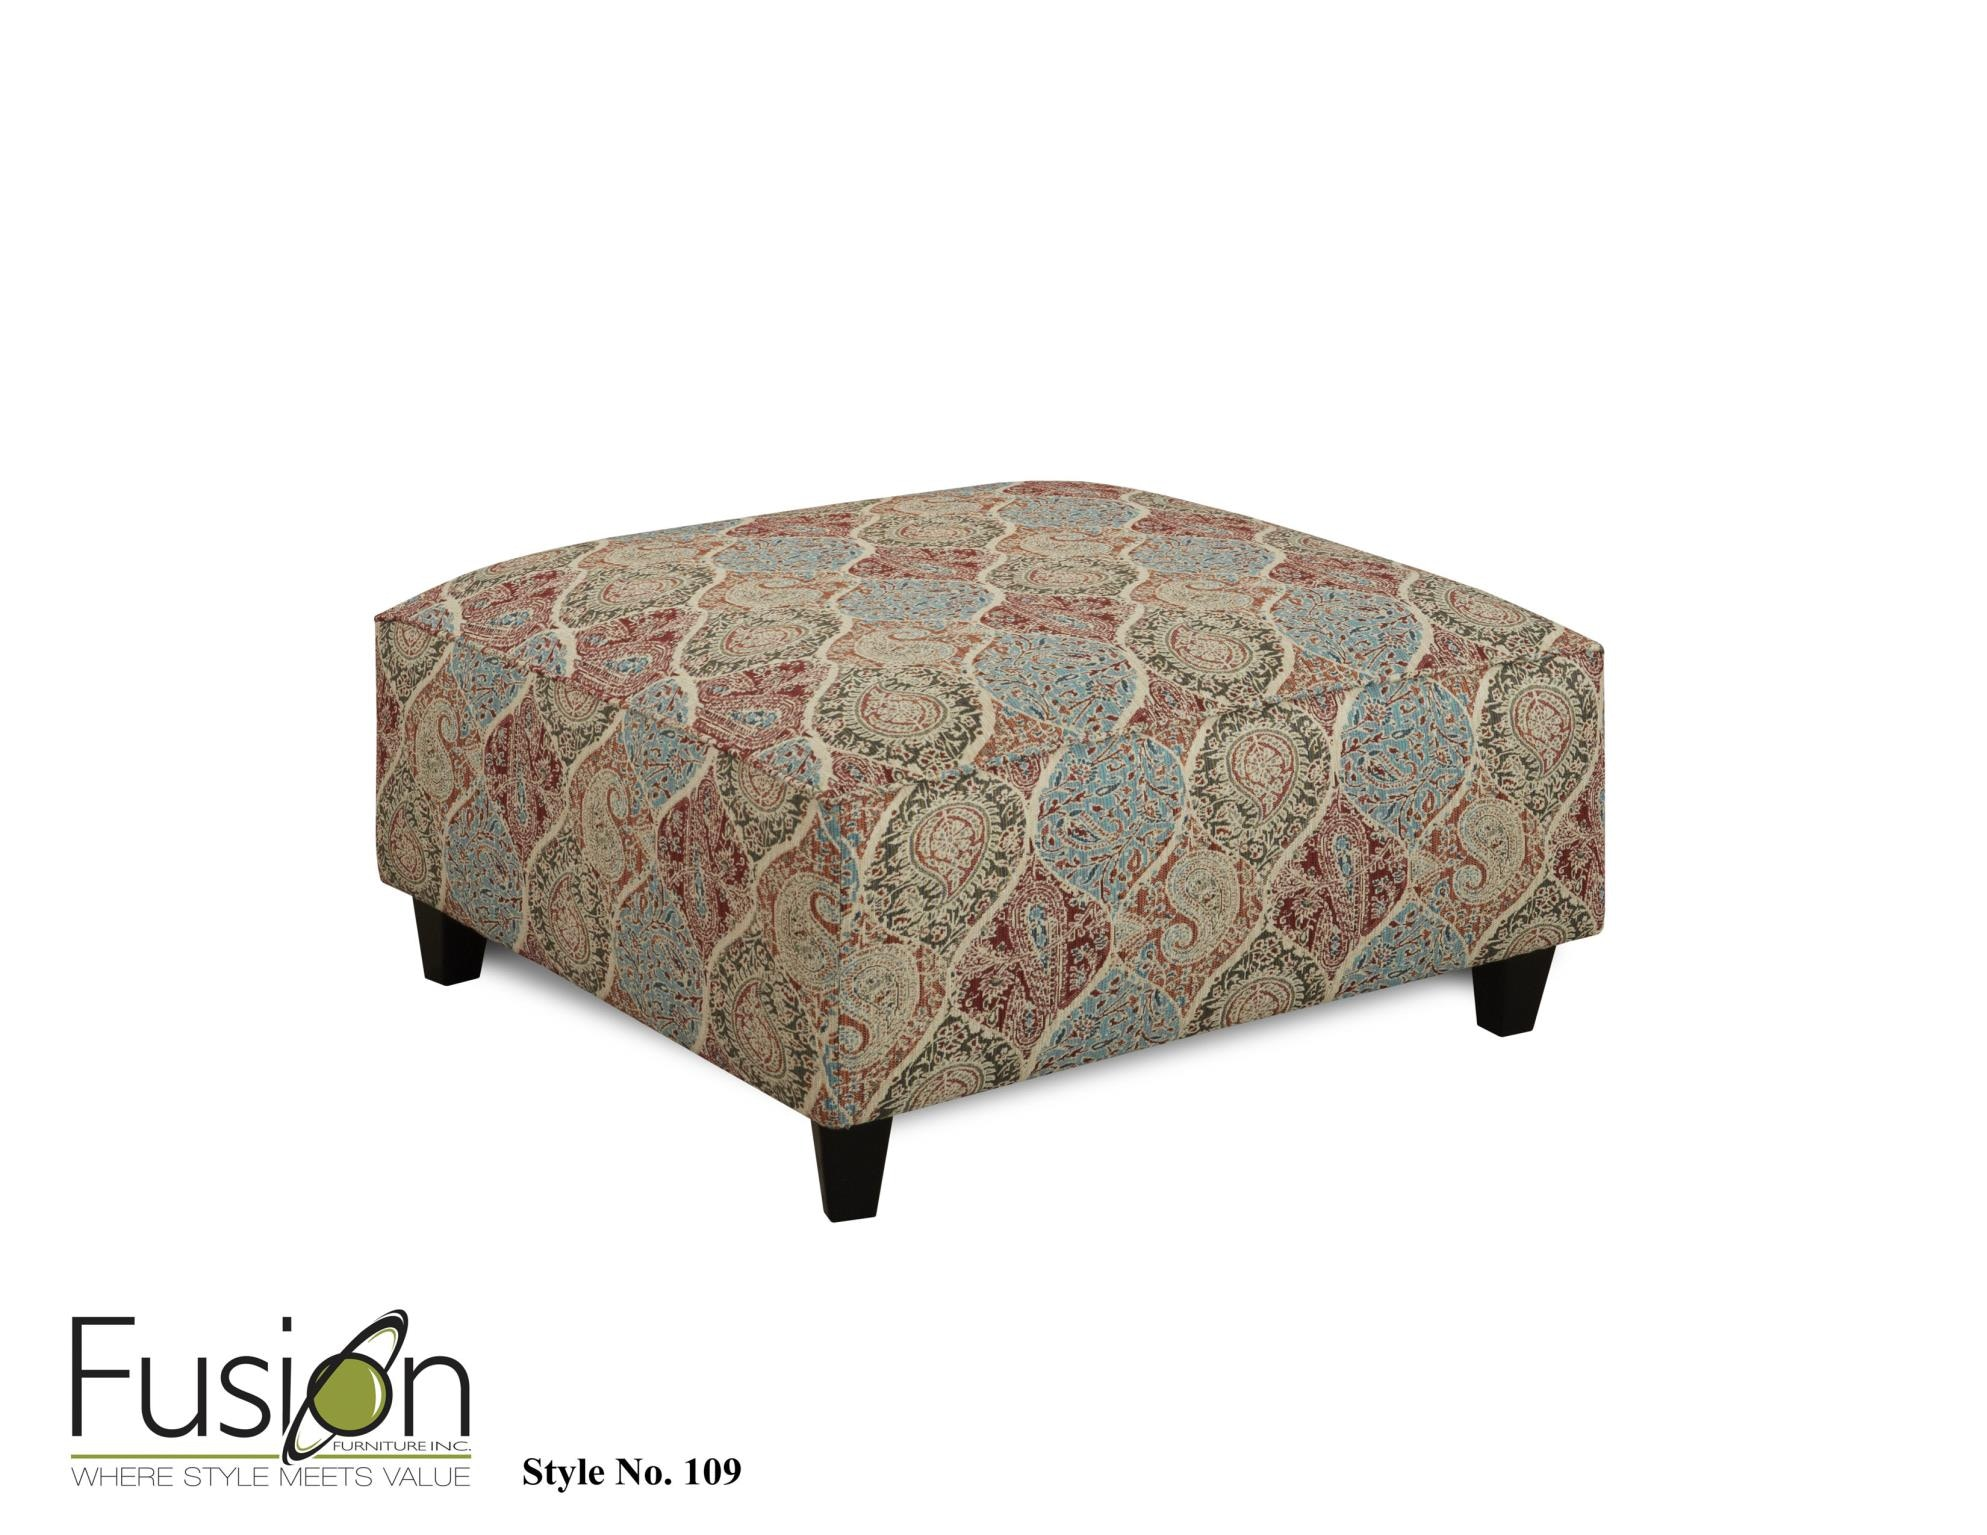 Fusion Cocktail Ottoman 109BILTMORE HEATHER At Gustafsonu0027s Furniture And  Mattress